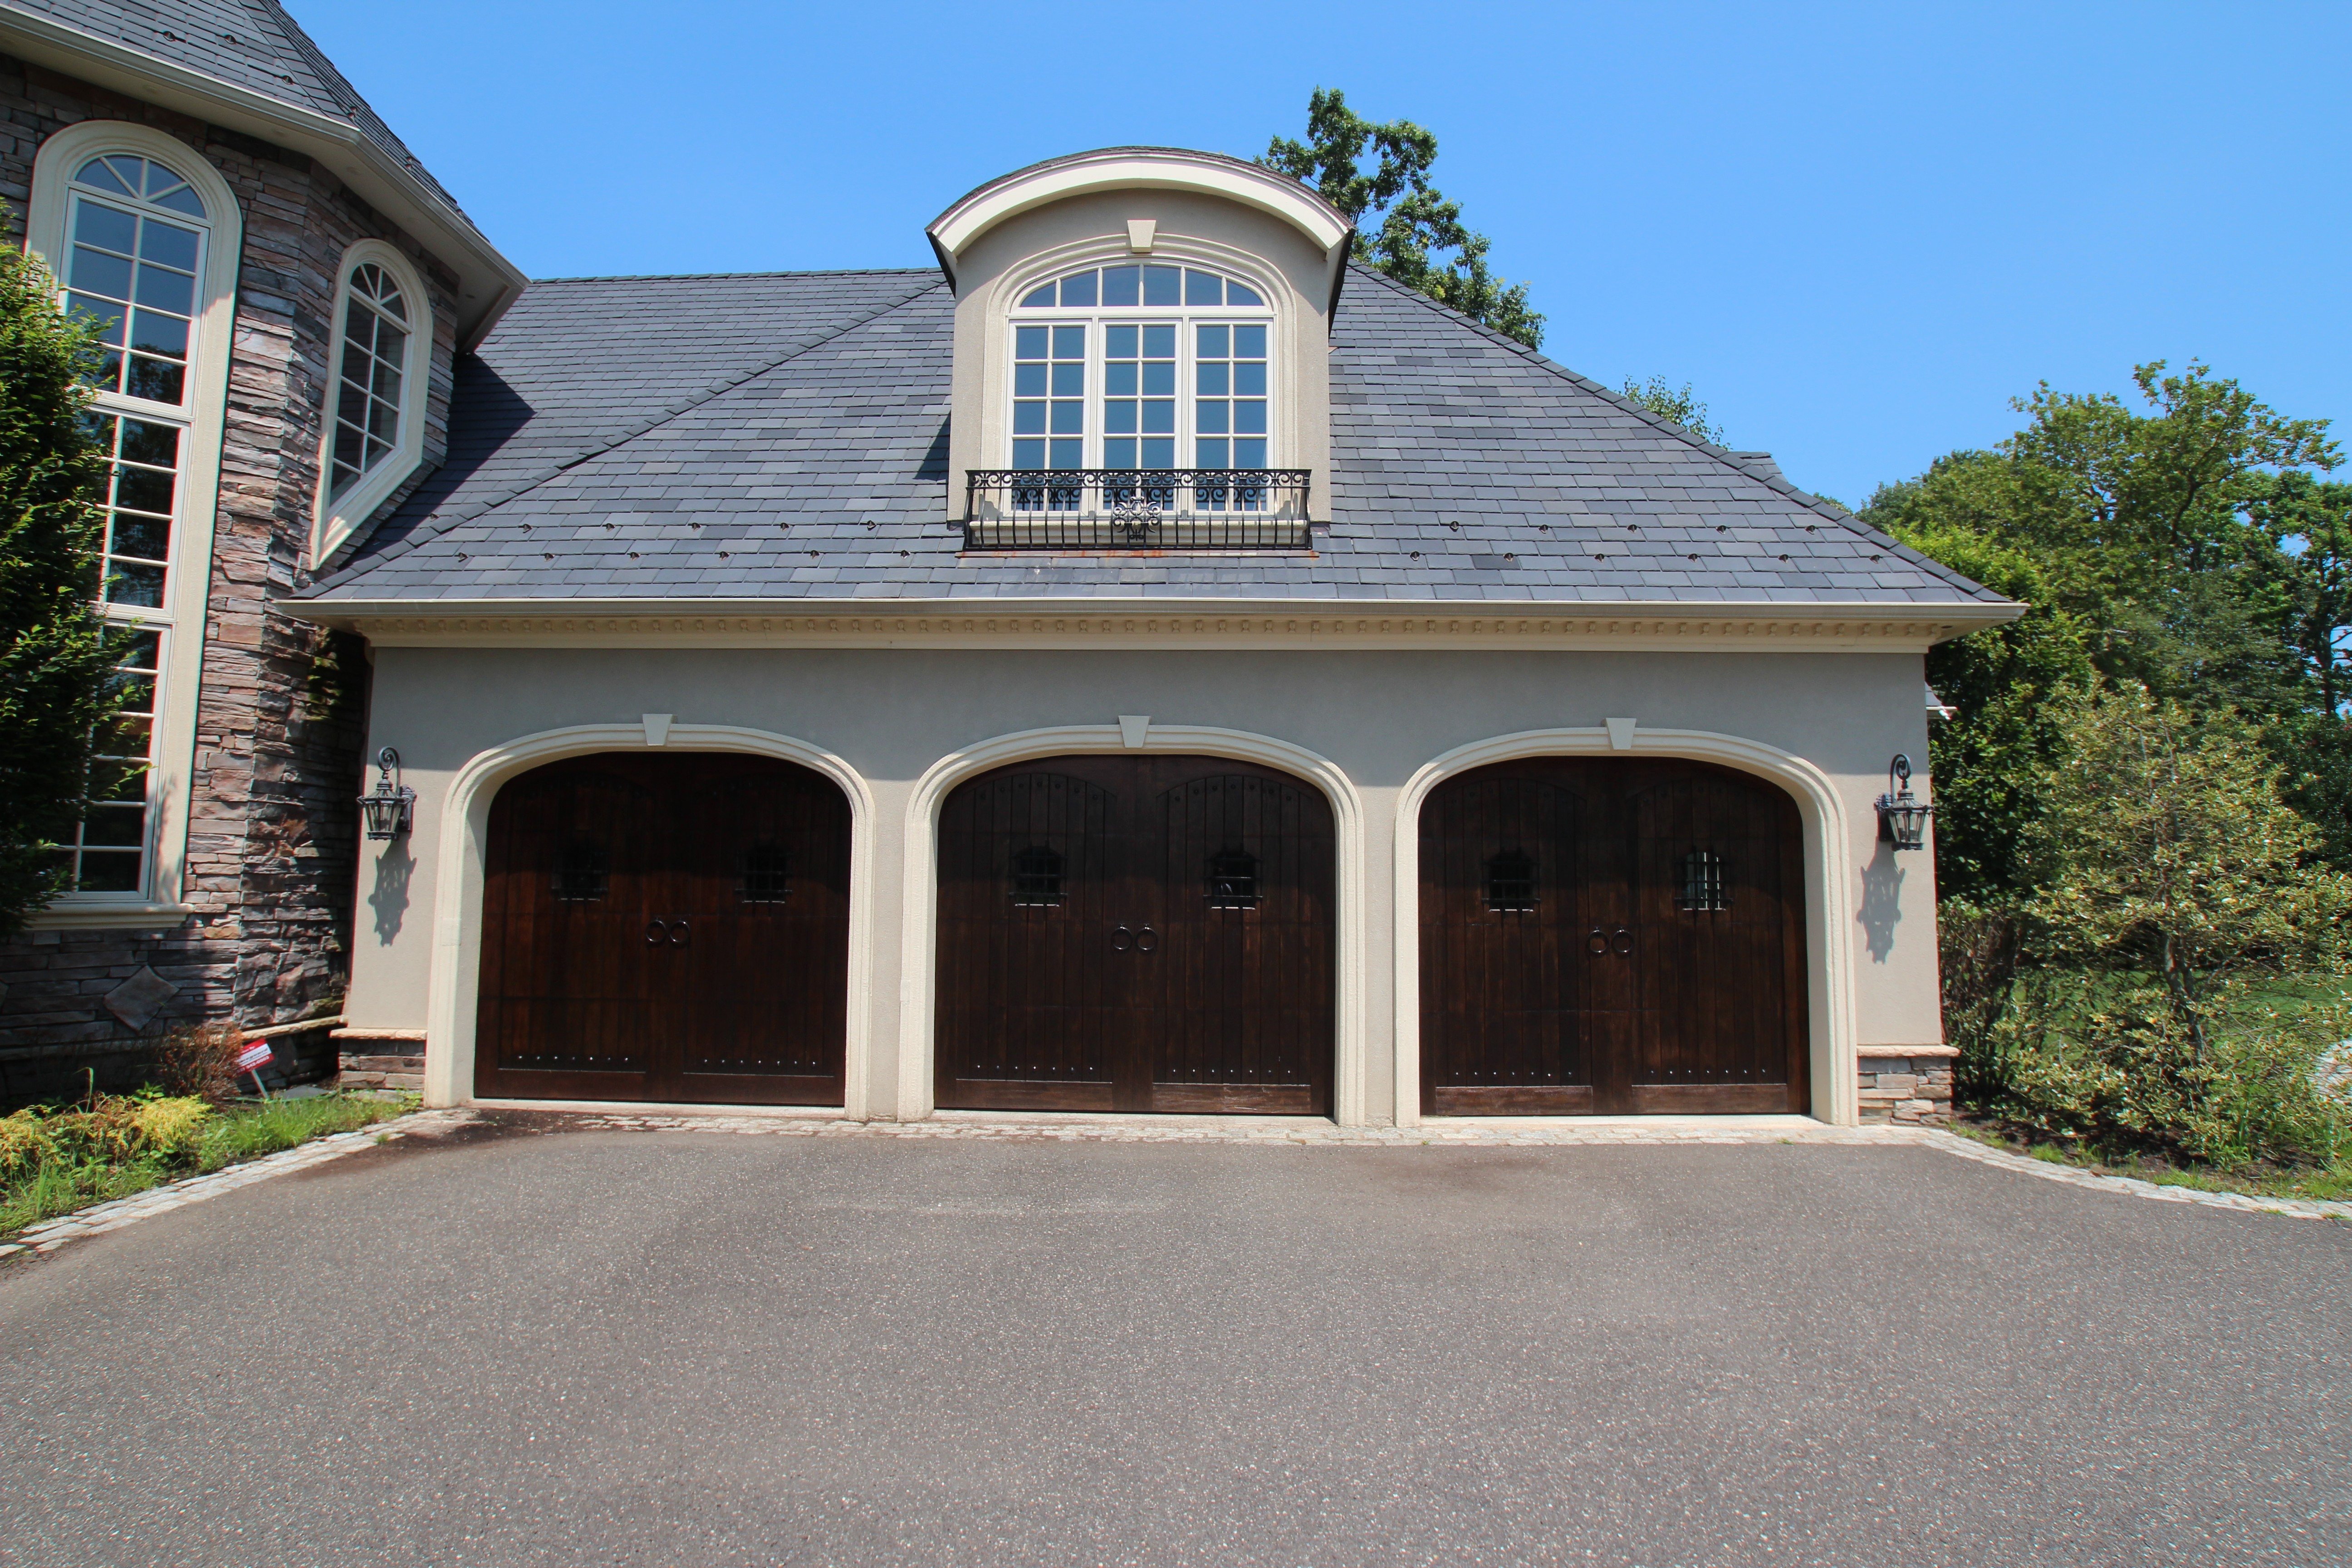 French Provincial Style Home Design Build Planners 3